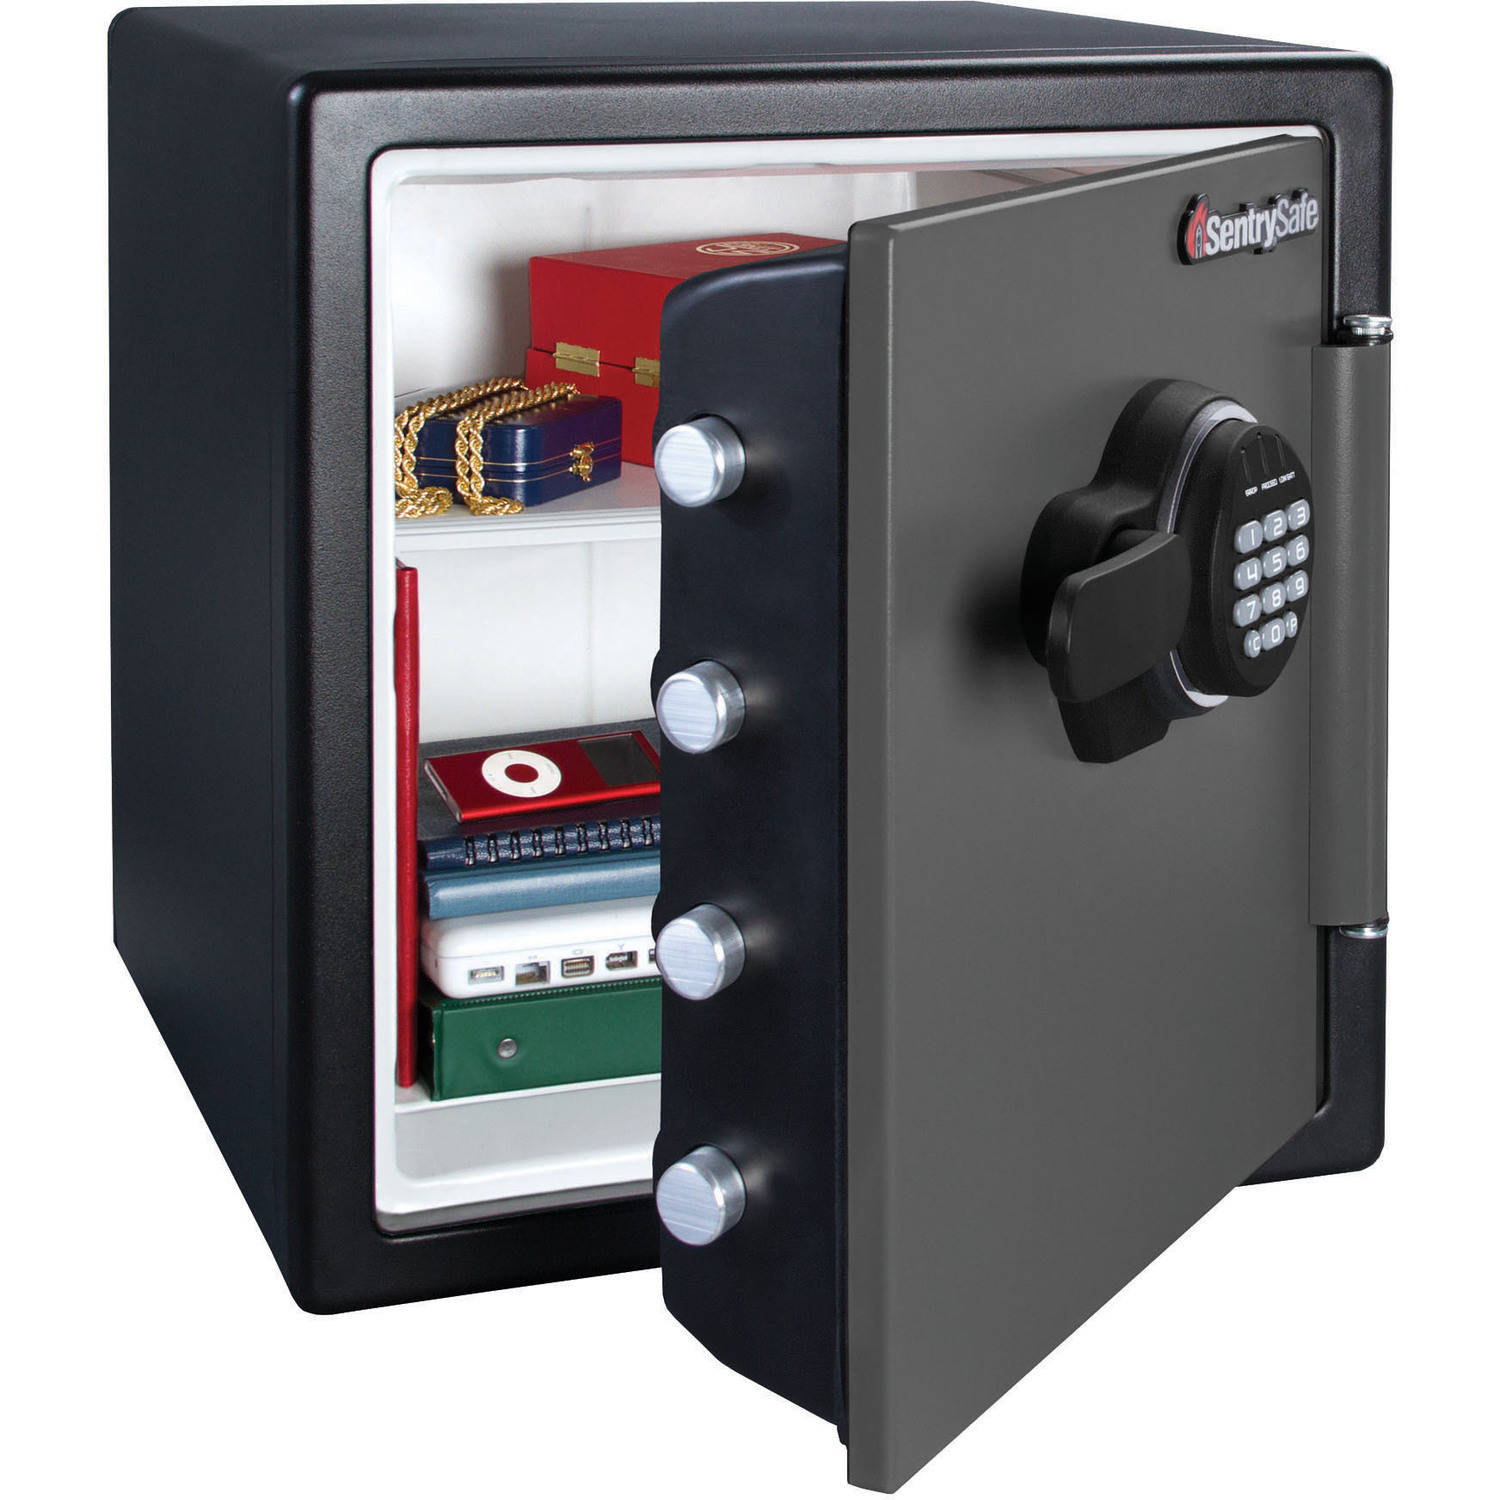 SentrySafe 1.2 cu. ft. Electronic Fire Safe, SFW123ES